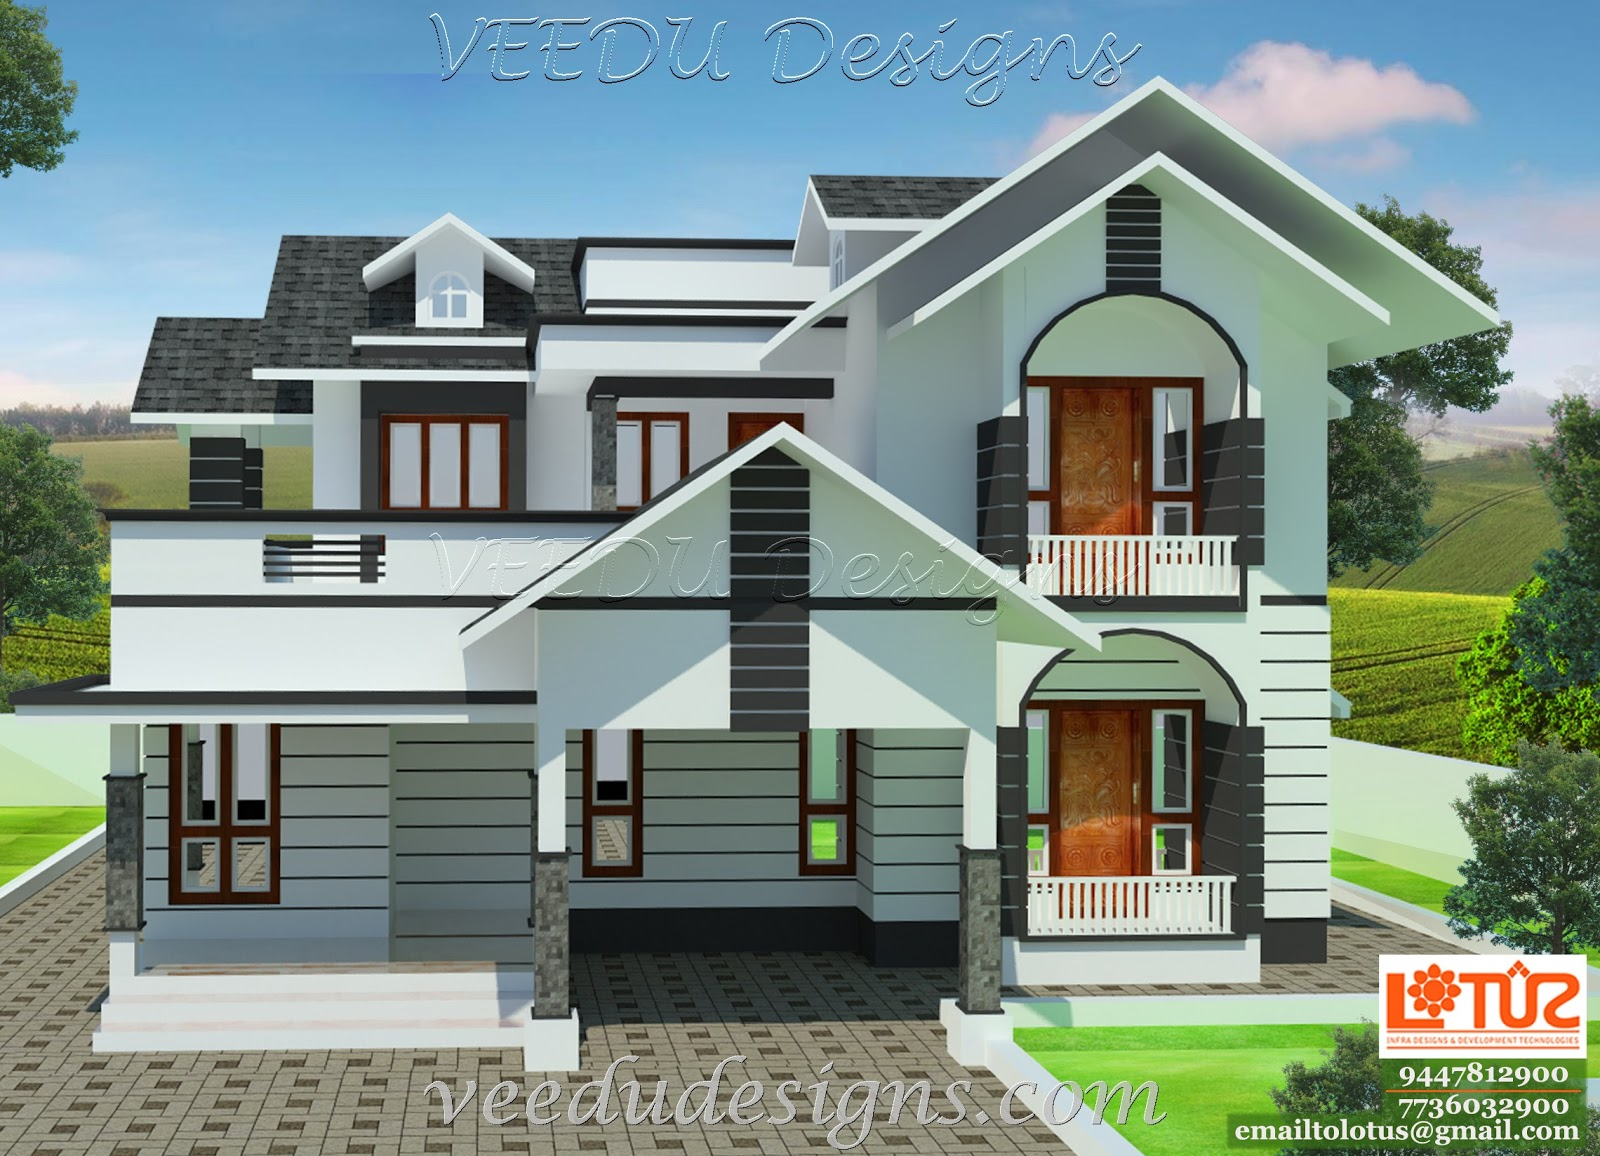 Veedu designs joy studio design gallery best design for House designs online